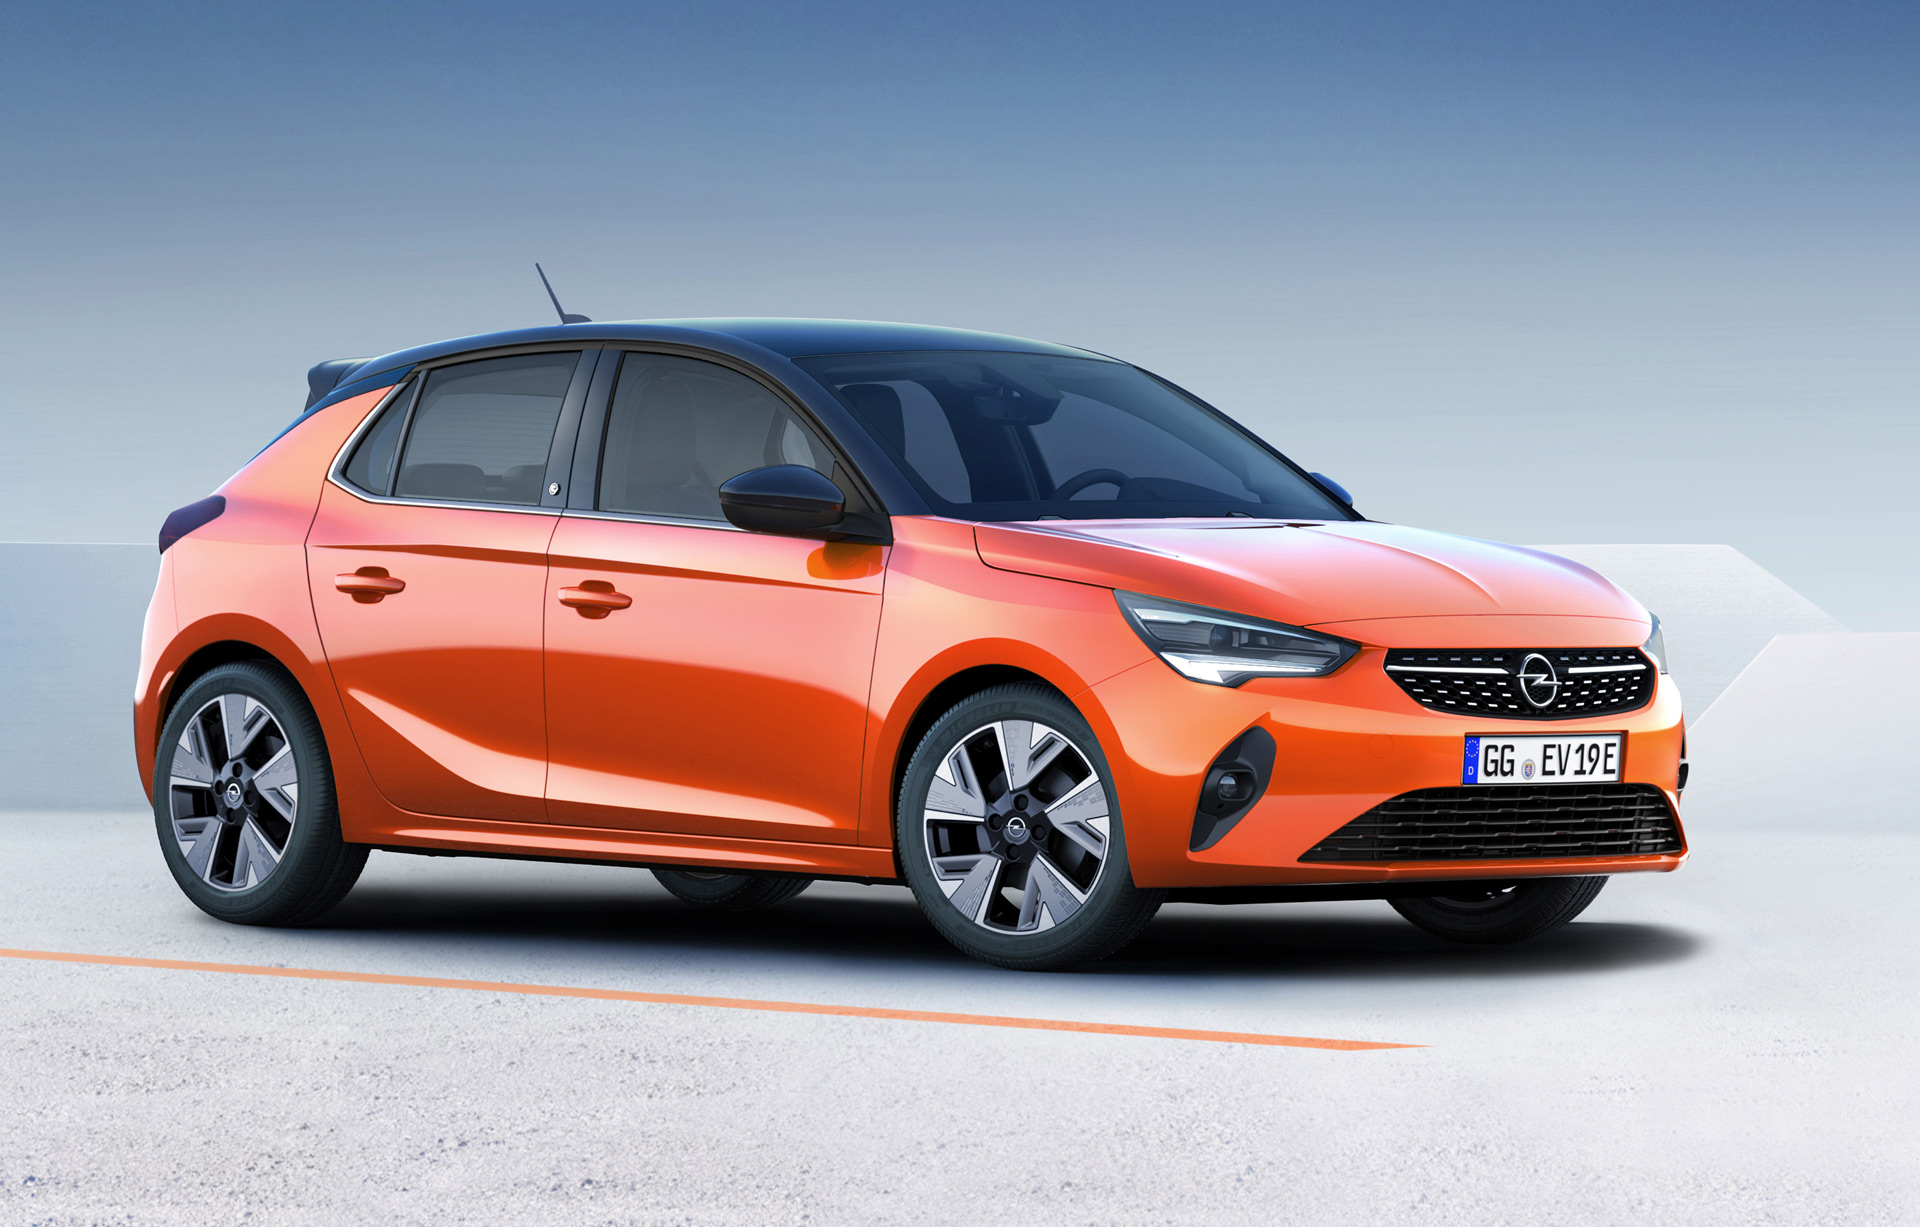 Corsa E Electric Hatchback Is Part Of Opel S First Move Independent